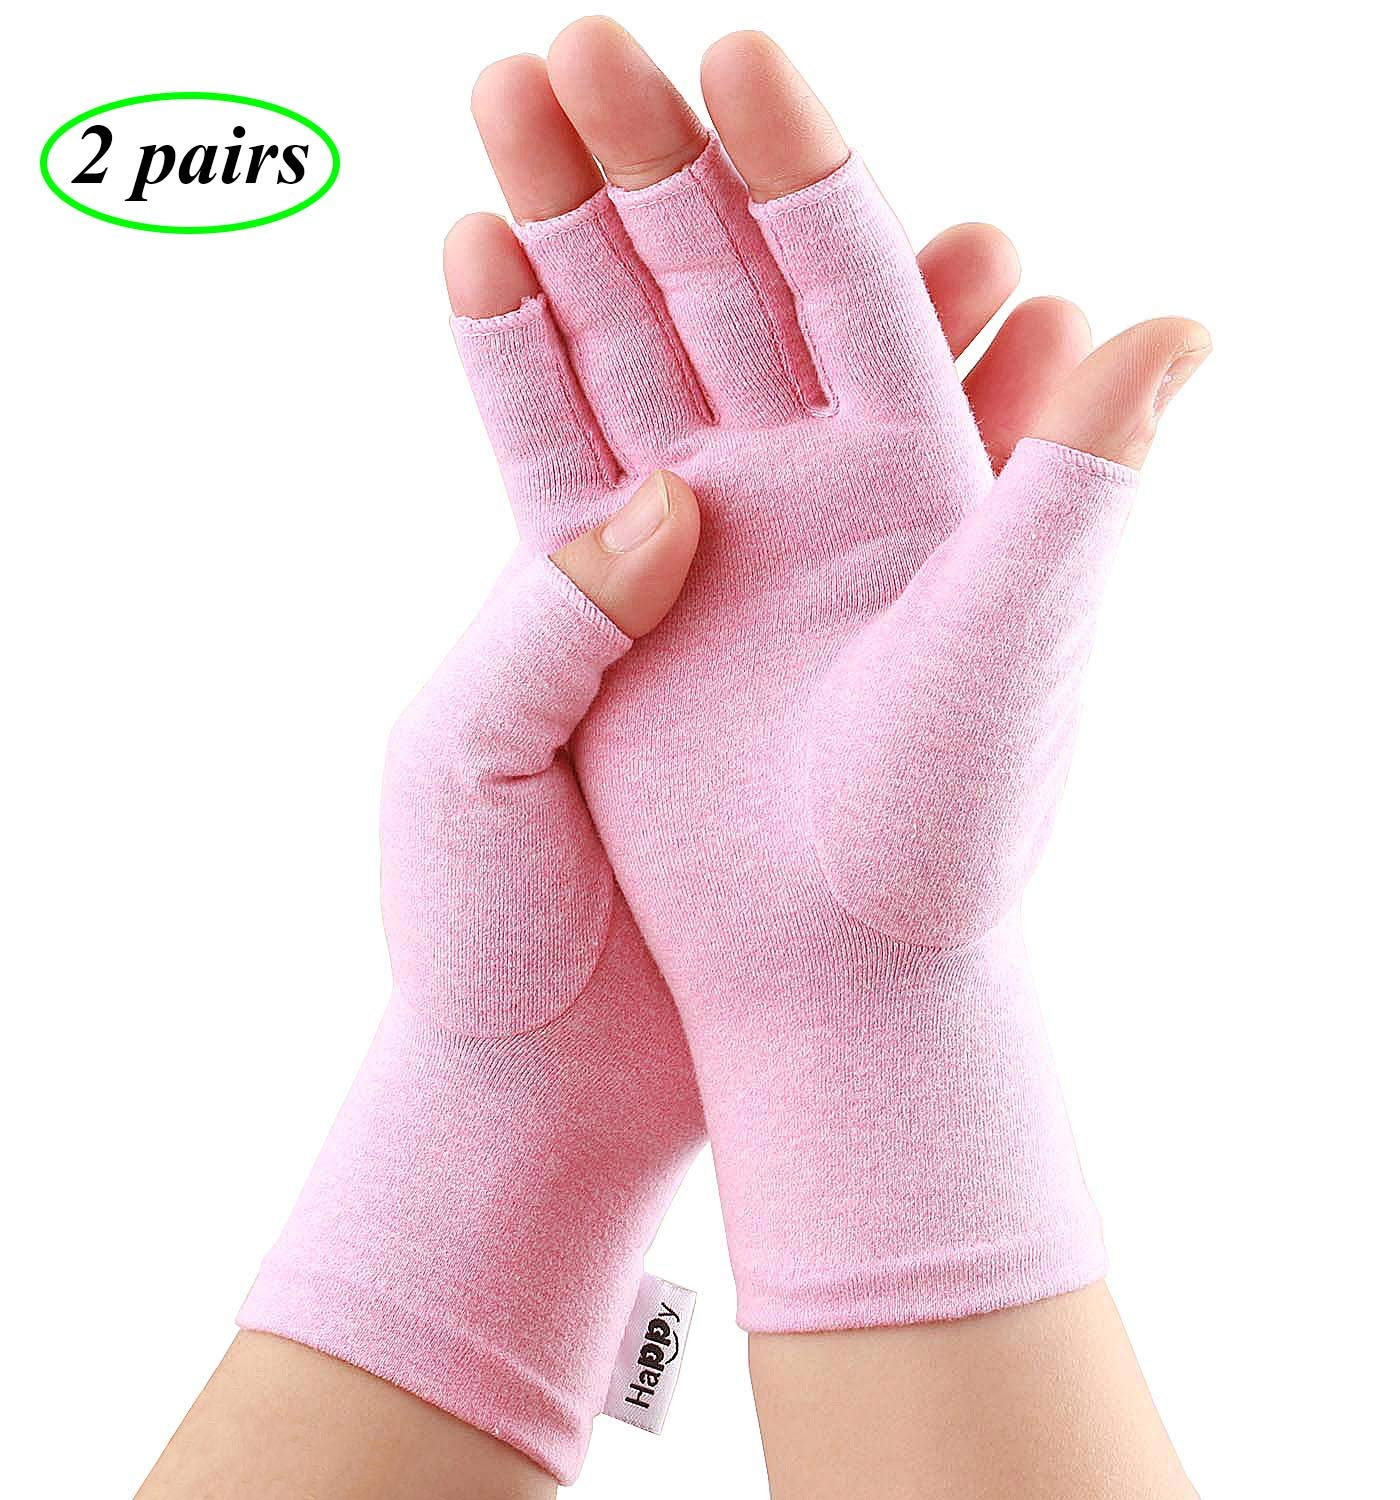 2 Pairs Compression Arthritis Gloves, Fingerless Gloves for Women Rheumatoid & Osteoarthritis - Joint Pain and Carpel Tunnel Relief Hand Gloves for Men (Pink, Medium-2 Pairs) by Happymart